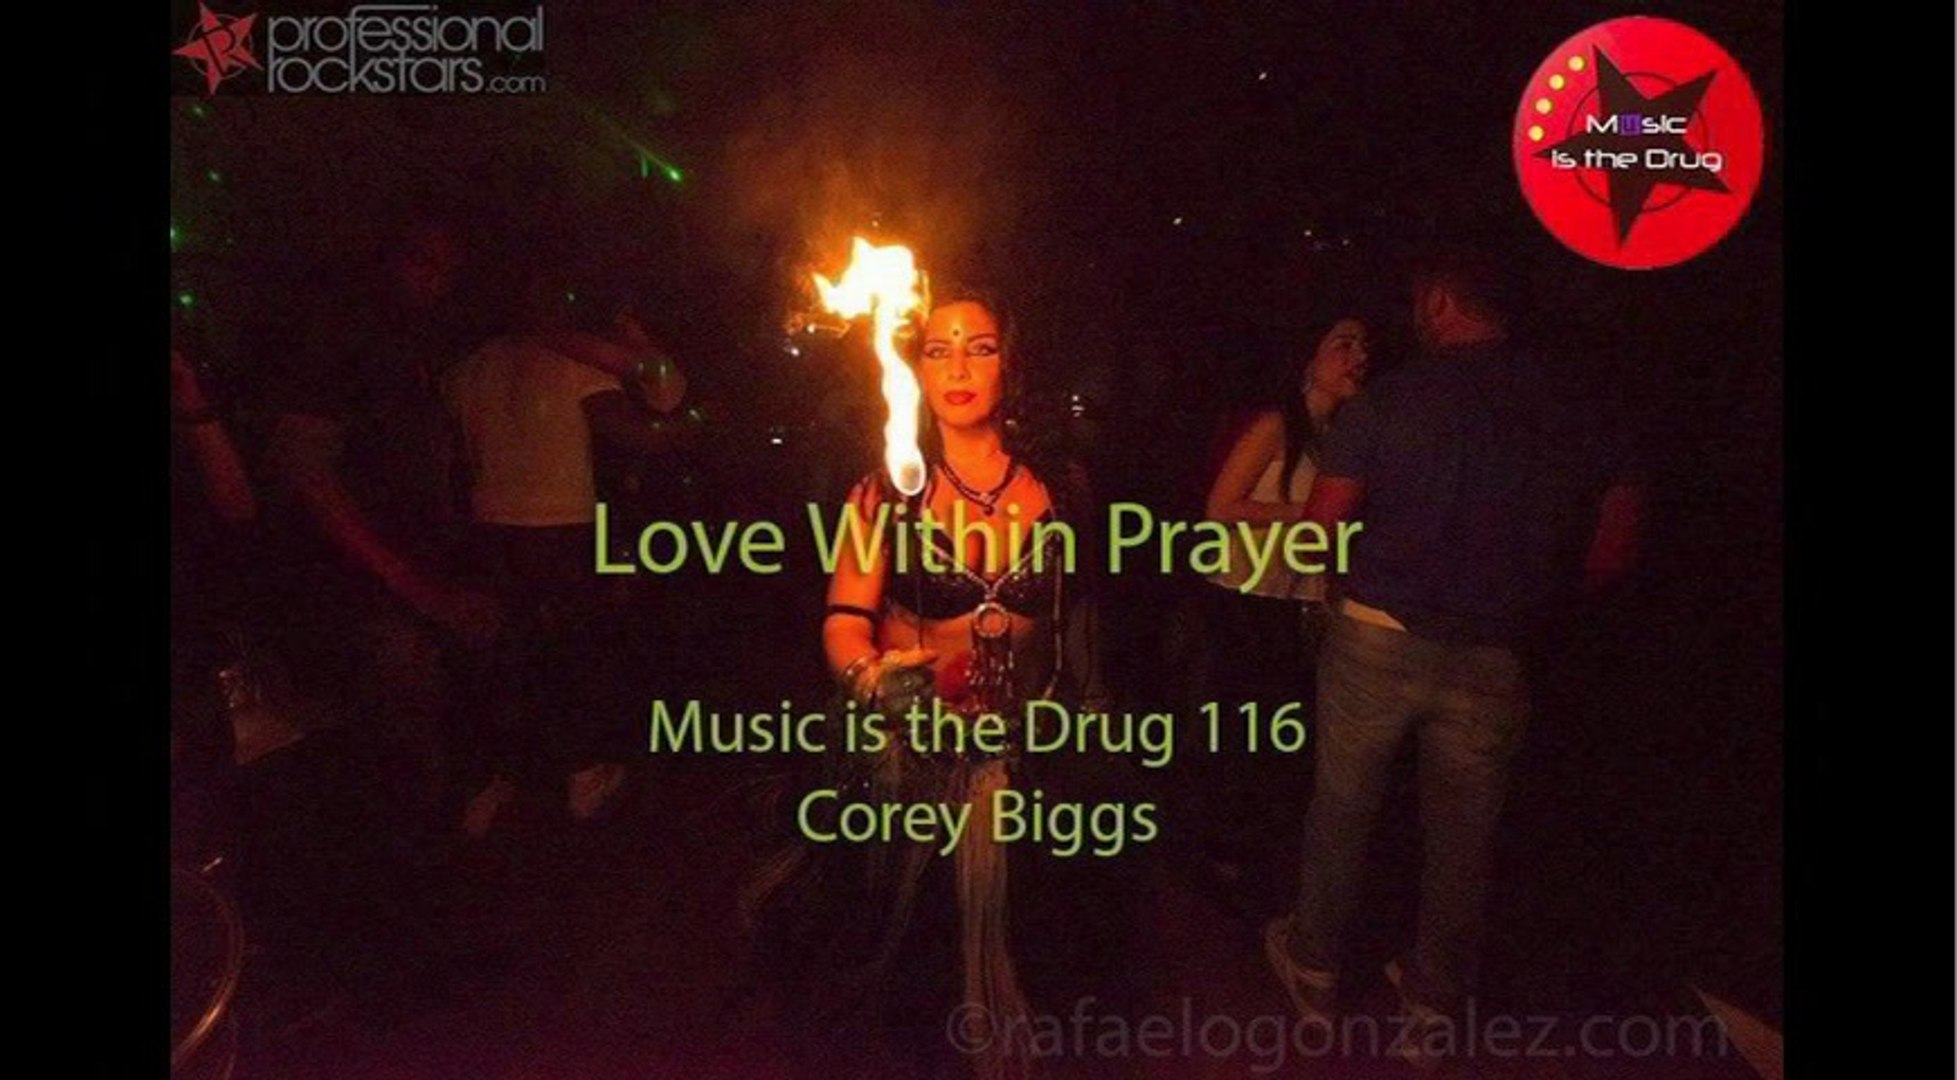 Corey Biggs - Music is the Drug 116  – Love Within Prayer